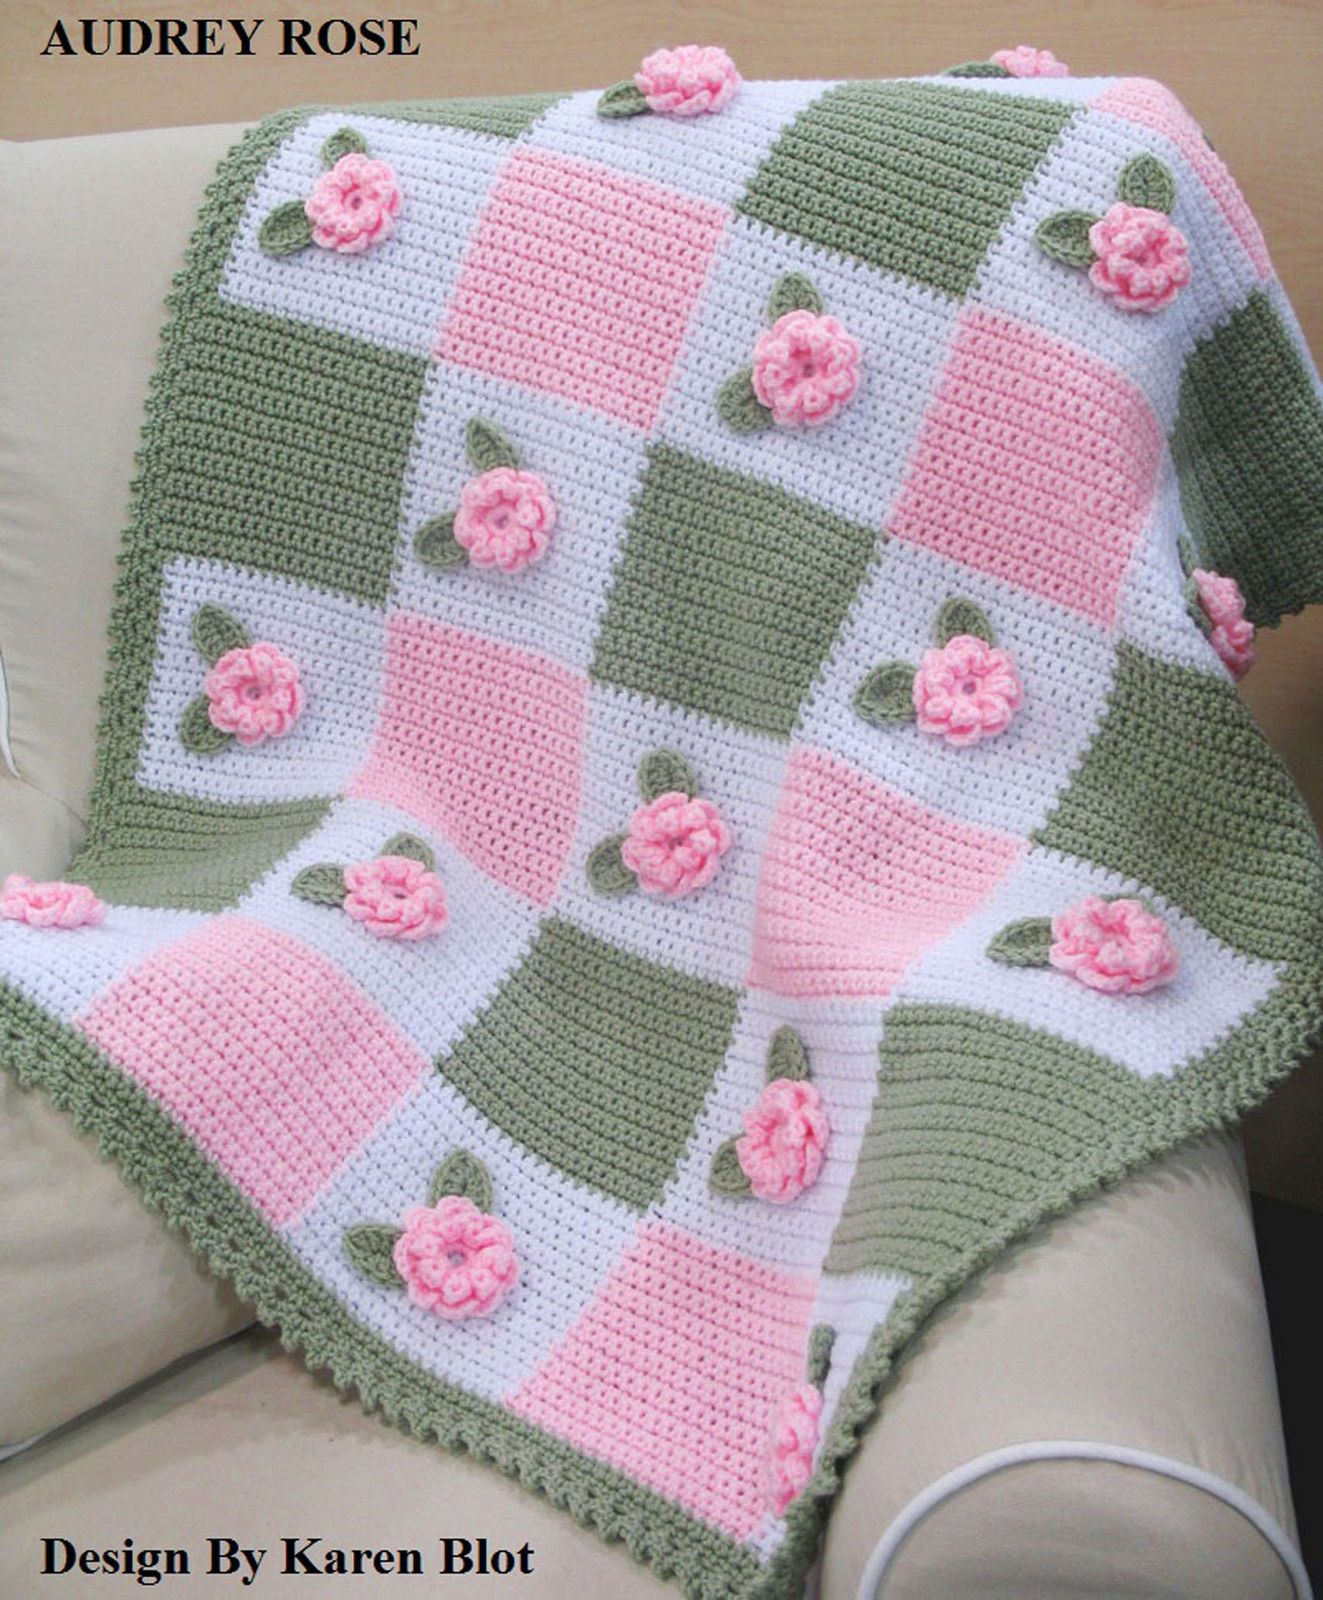 Victorian \'Audrey Rose\' Baby Crochet Afghan Pattern 3-D | Audrey ...